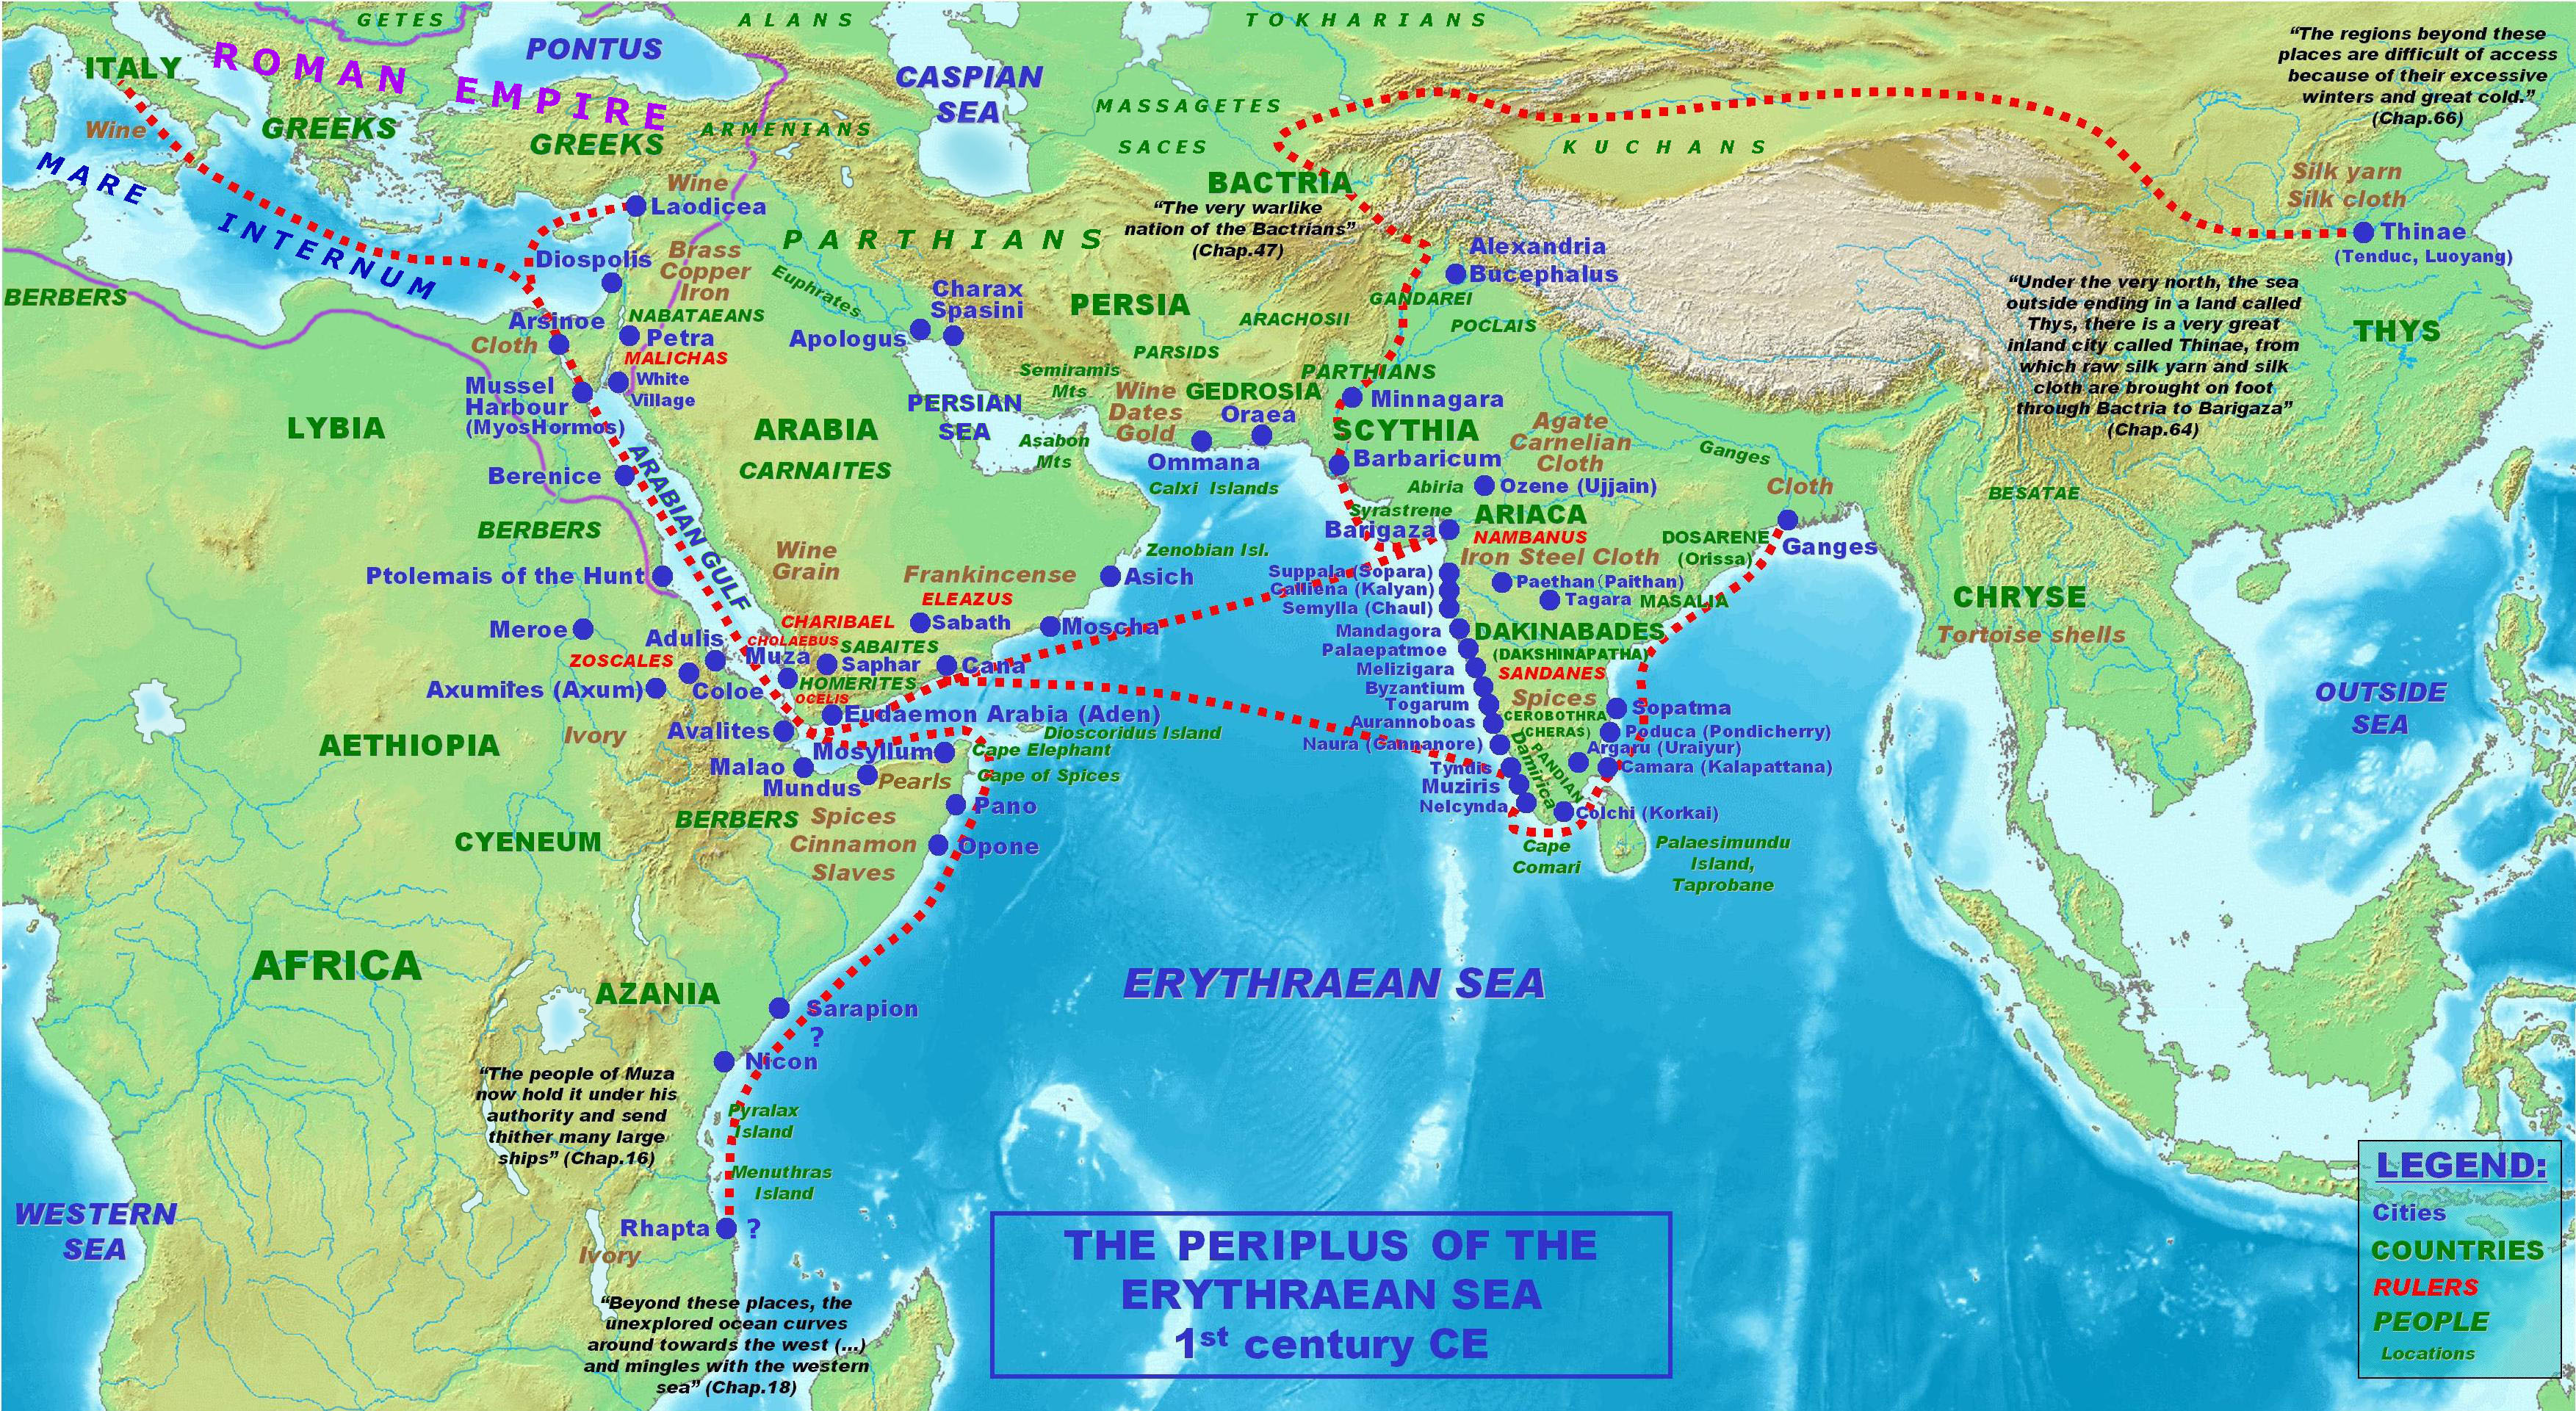 https://i2.wp.com/upload.wikimedia.org/wikipedia/commons/a/a5/Map_of_the_Periplus_of_the_Erythraean_Sea.jpg